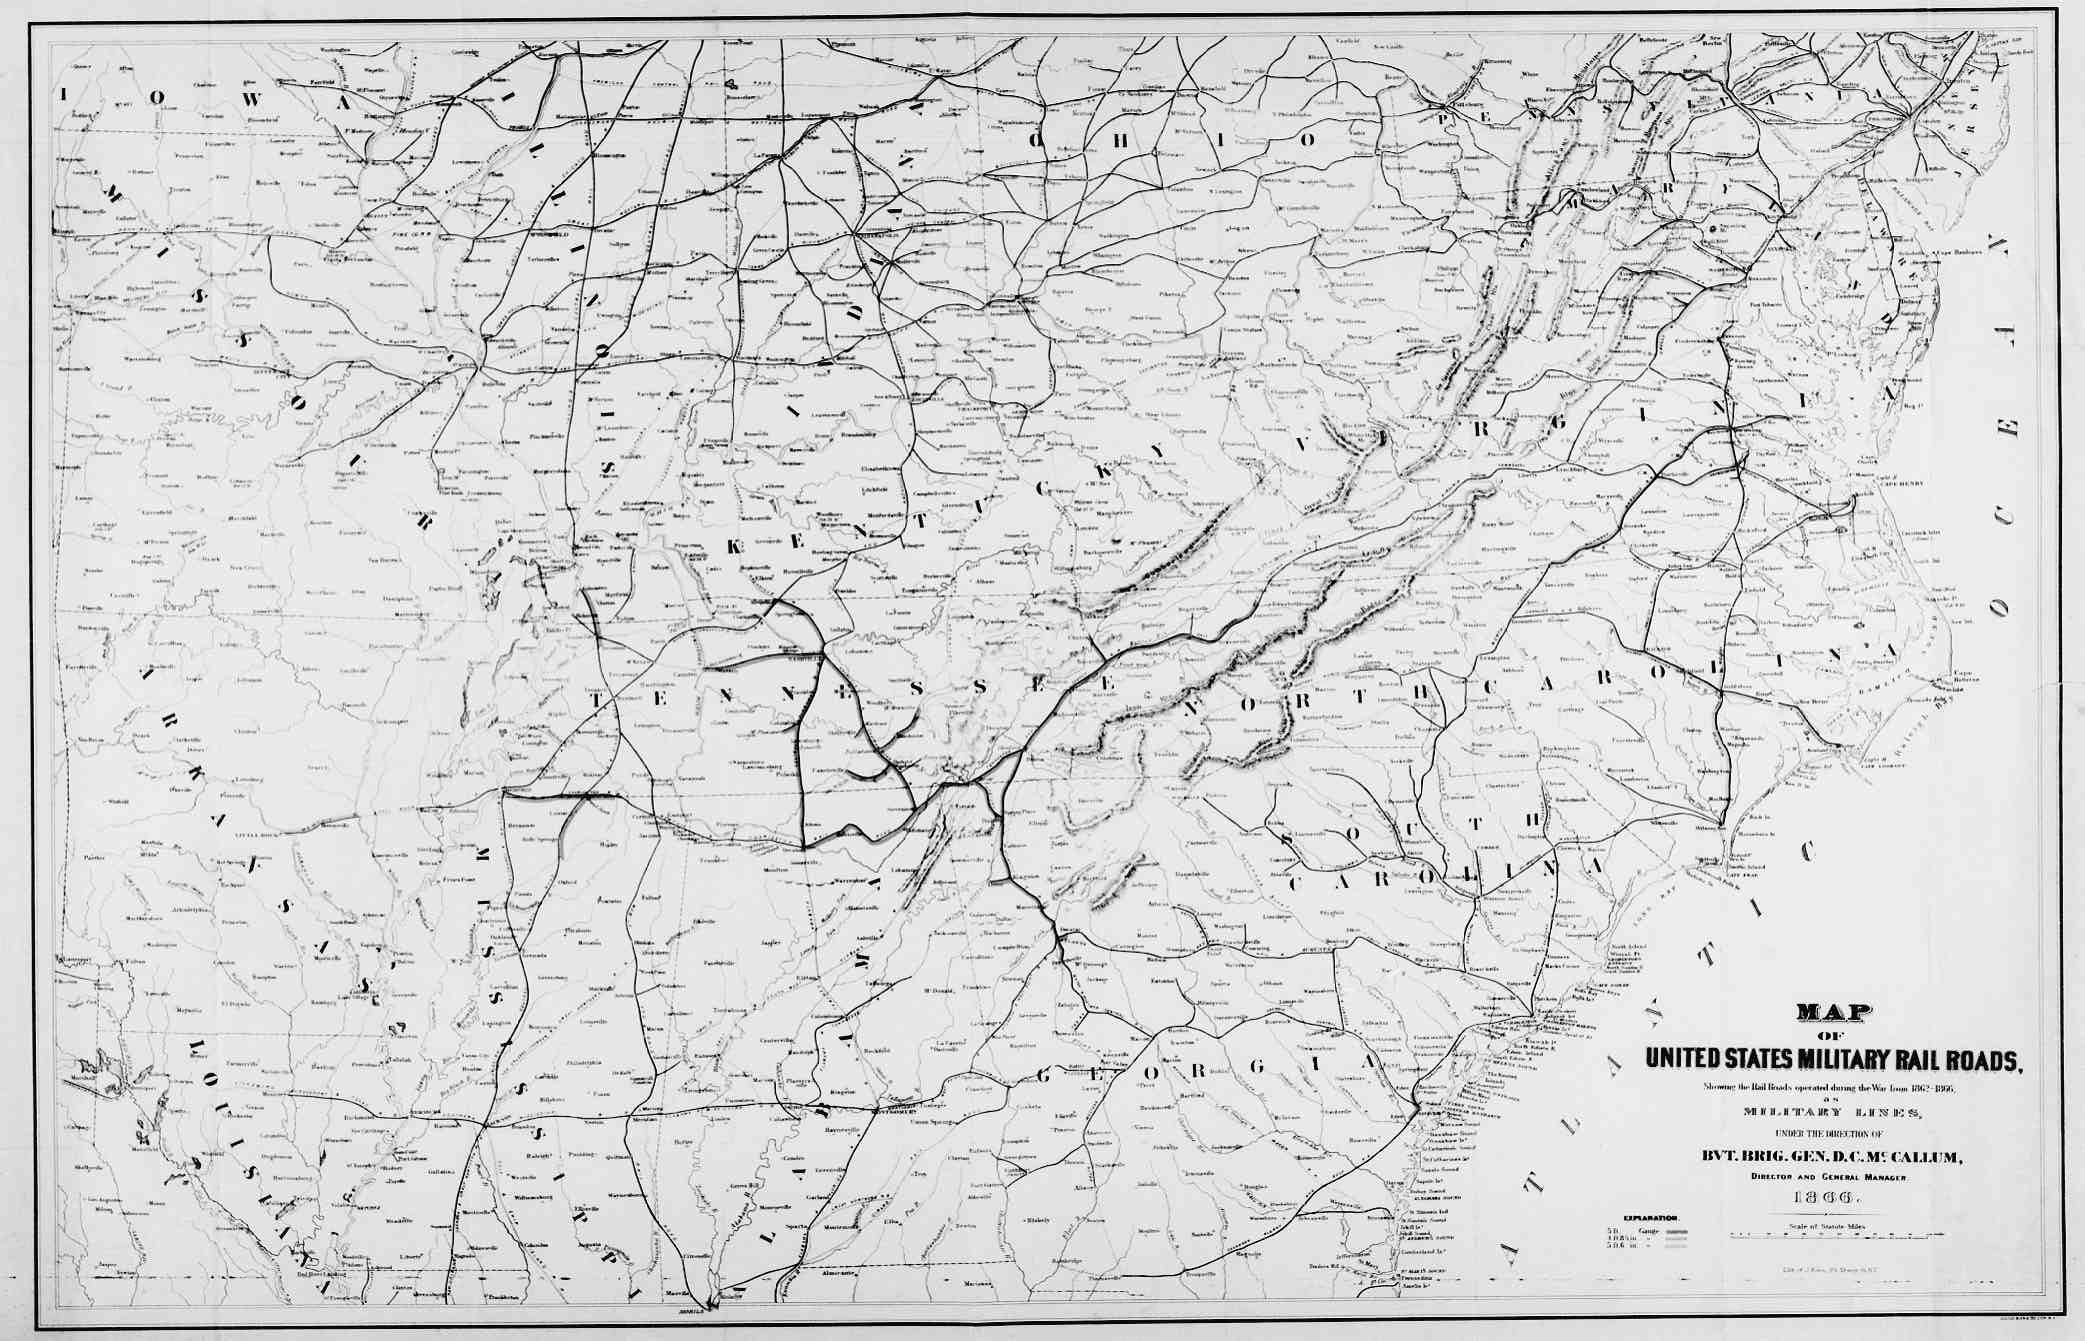 Hargrett Library Rare Map Collection - Transportation